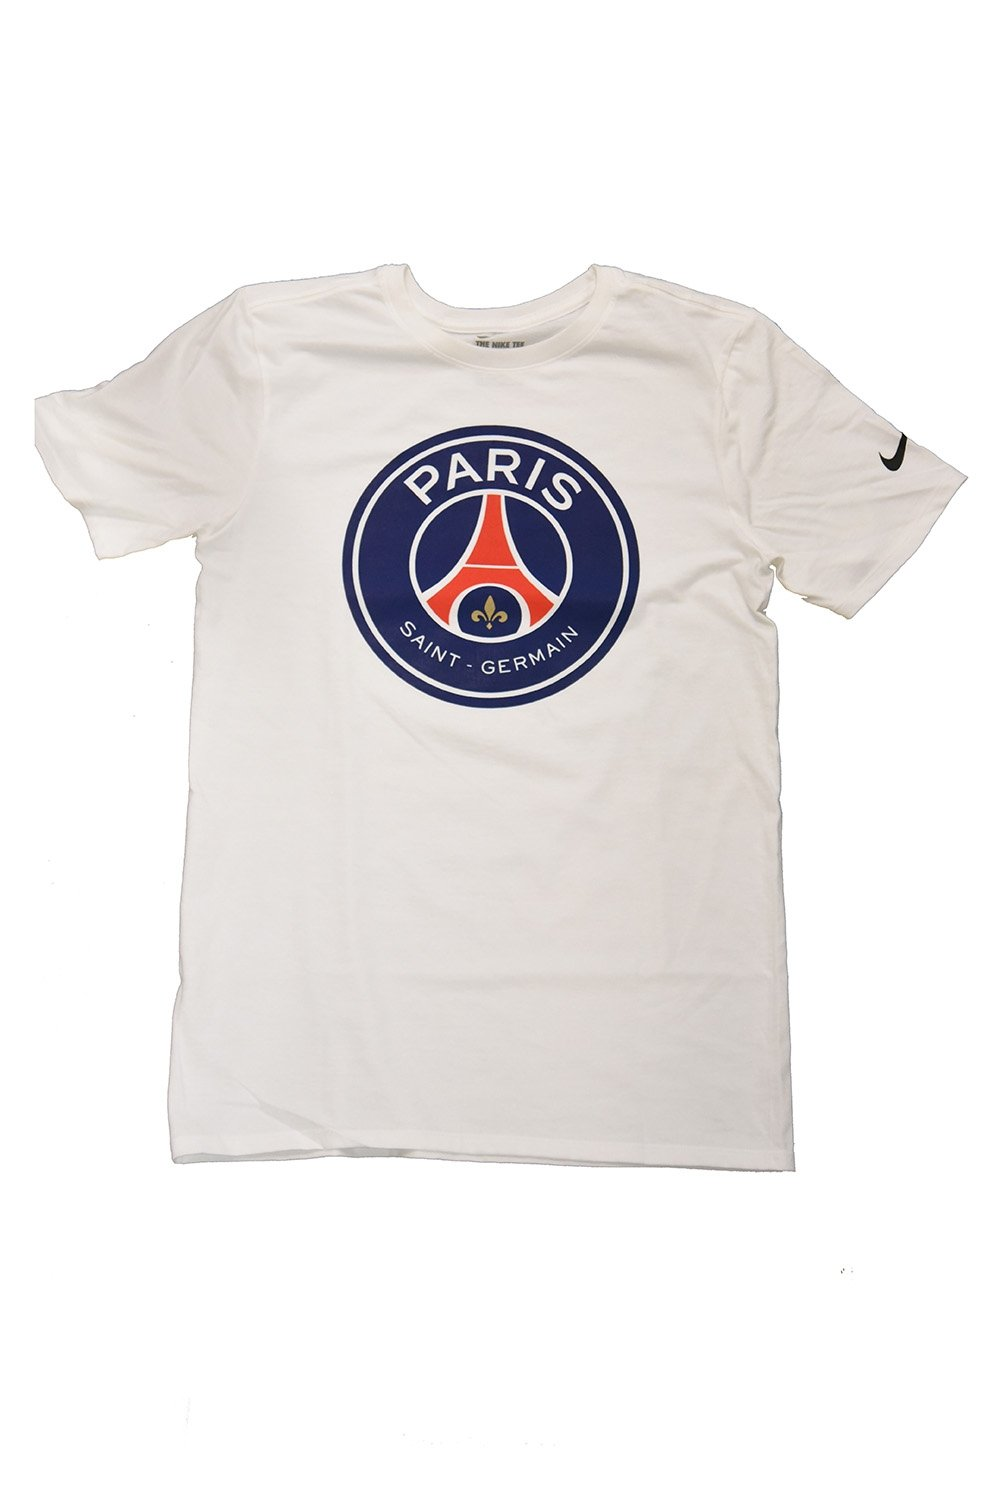 f785b057322 Men's Paris Saint-Germain Cotton Tee